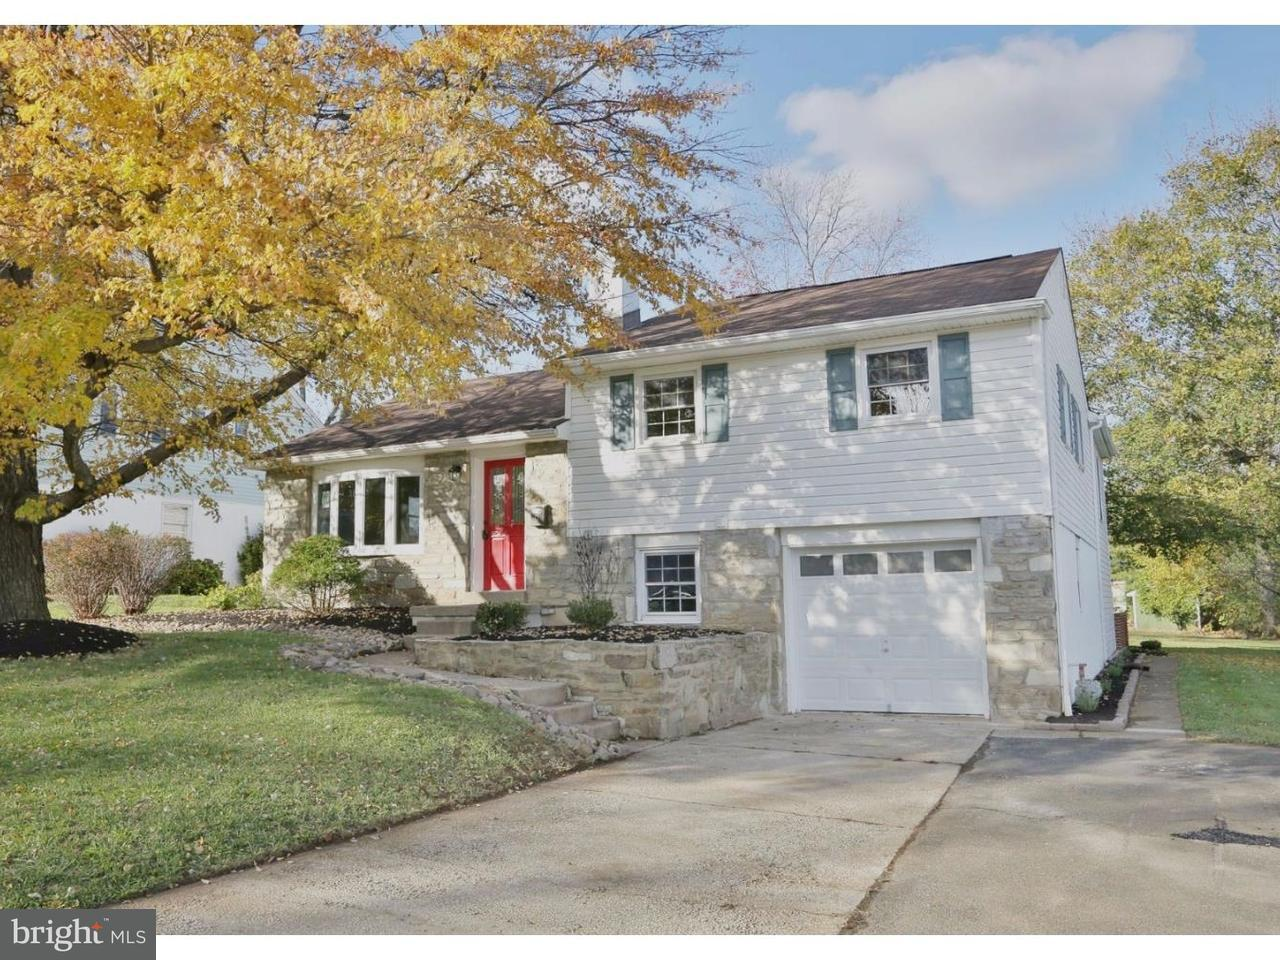 Single Family Home for Sale at 9 EASTVIEW Drive Glenside, Pennsylvania 19038 United States